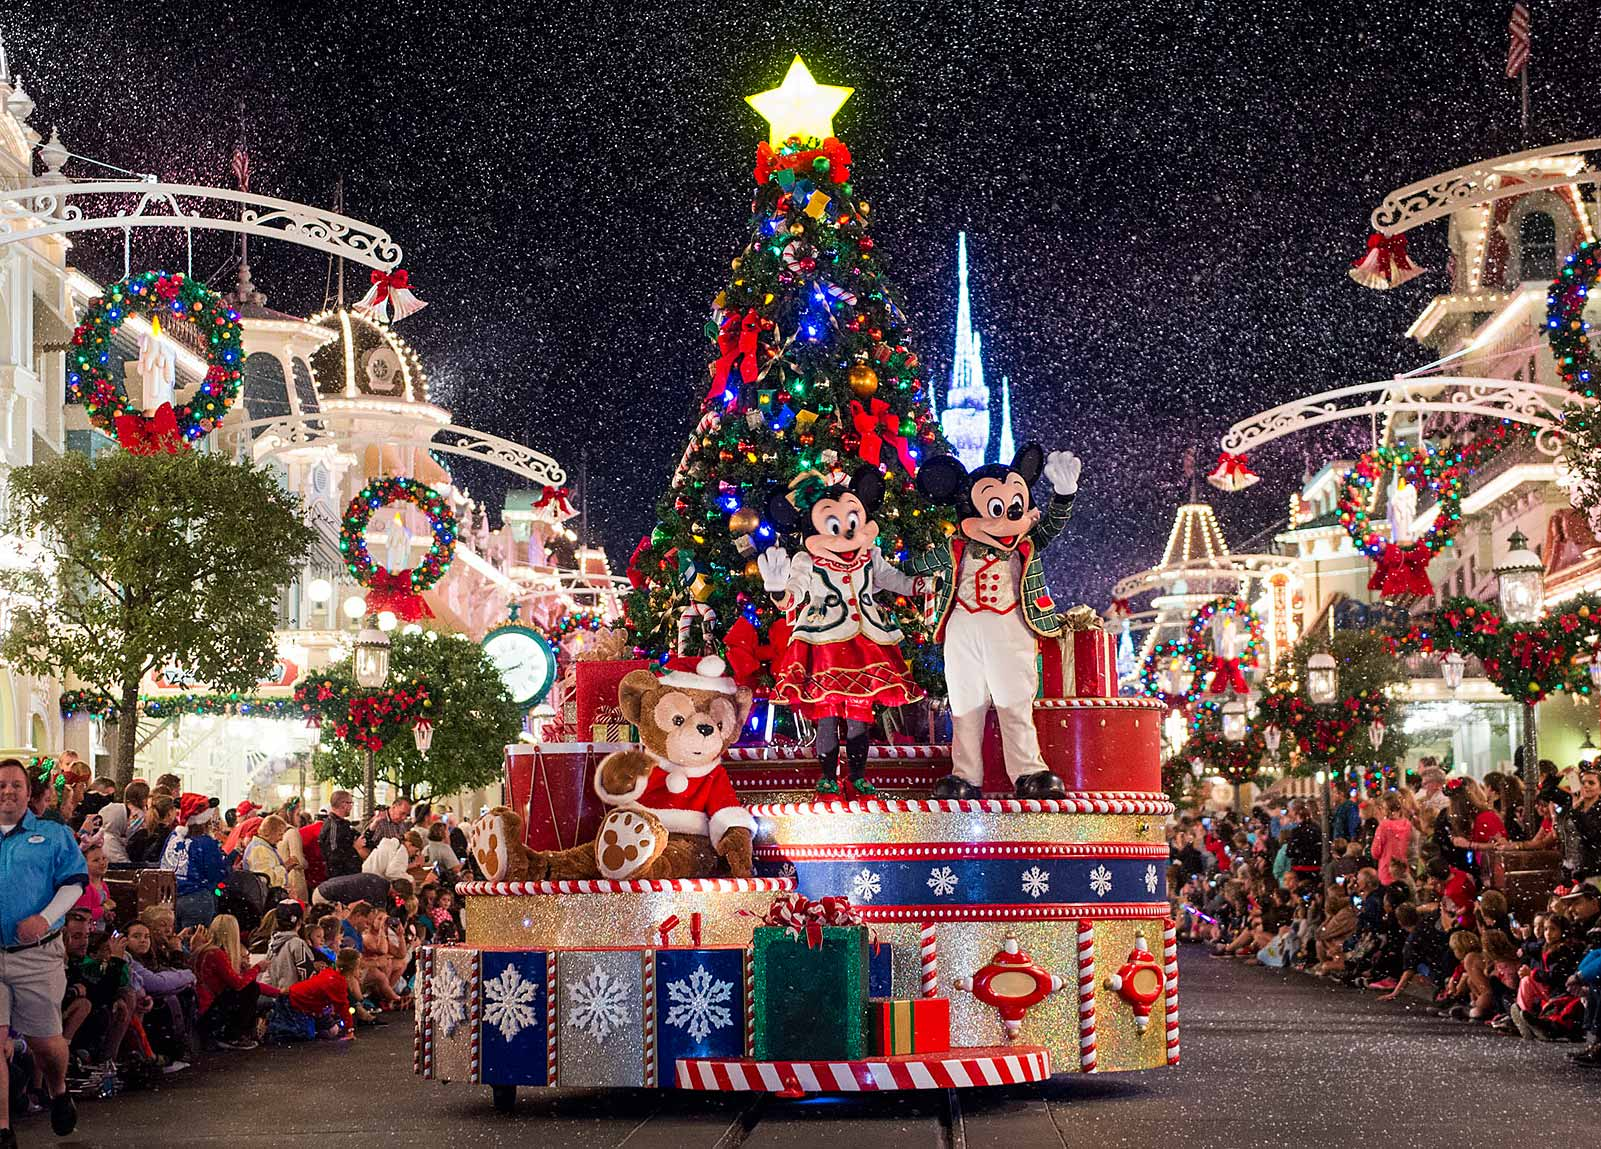 Christmas Day Parade.Christmas At Disney World 2019 Walt Disney World Christmas